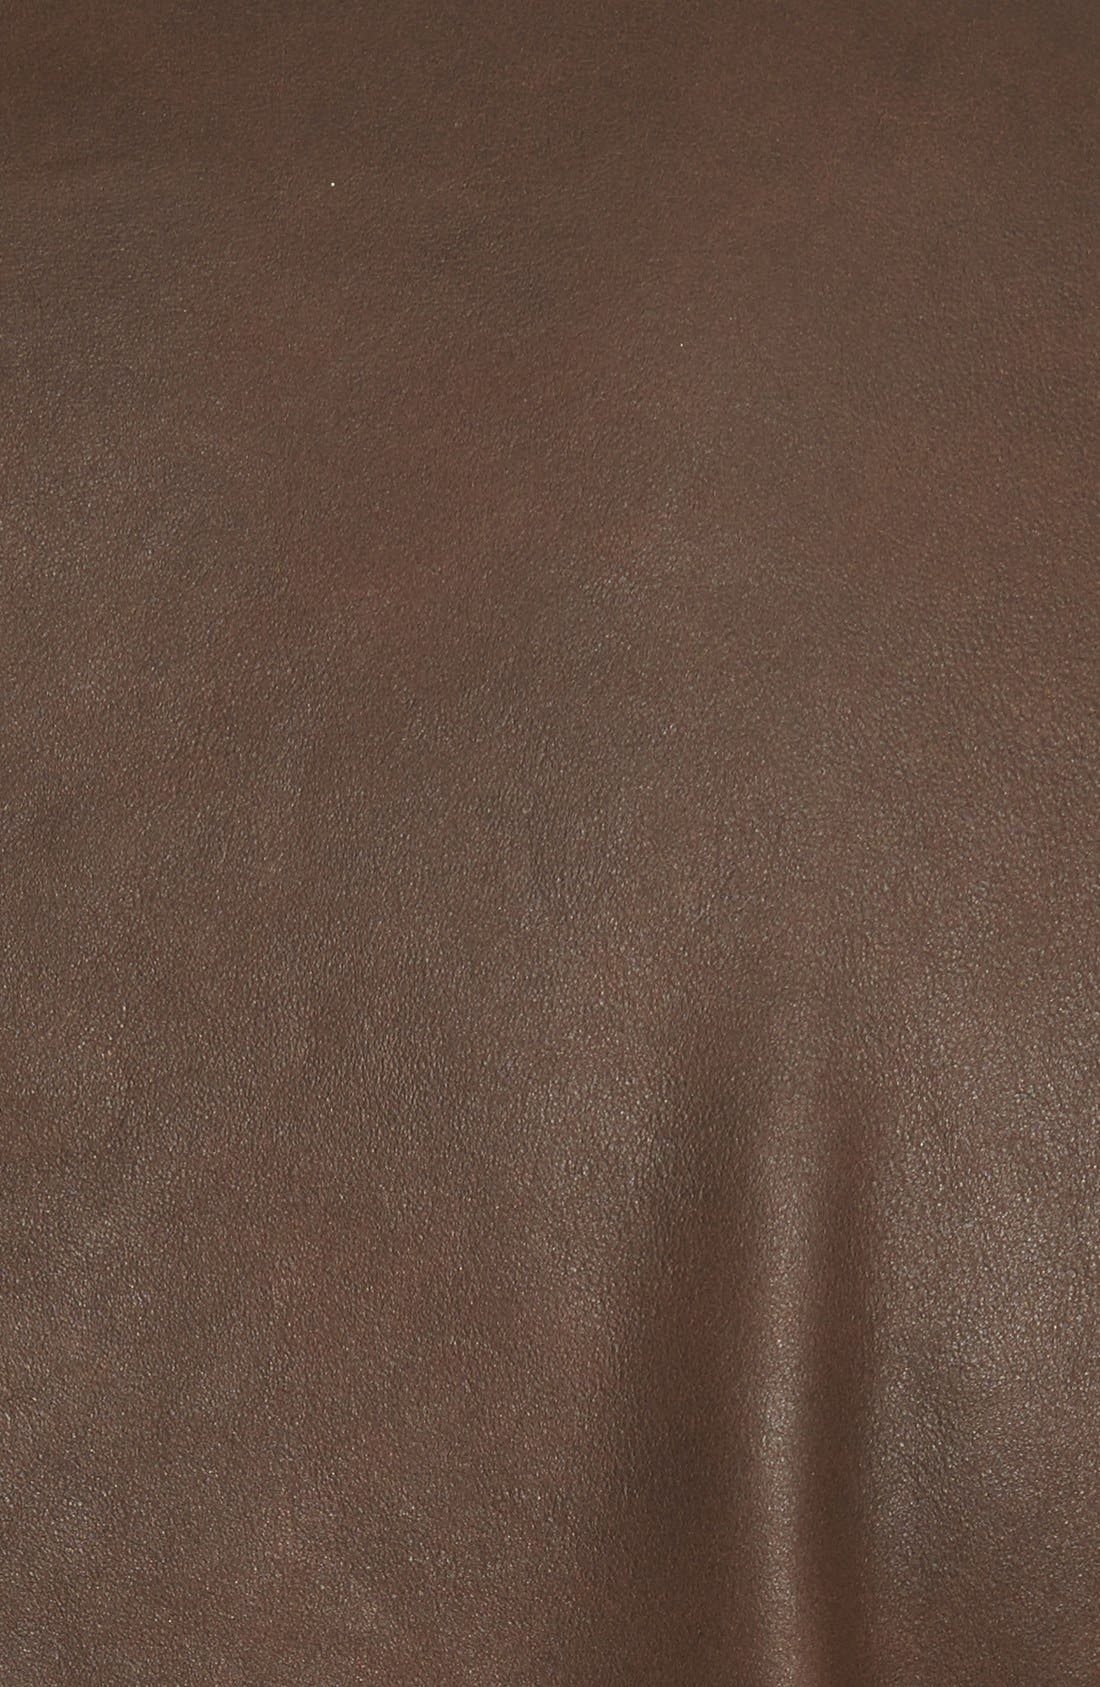 Unlined Leather Jacket,                             Alternate thumbnail 5, color,                             200